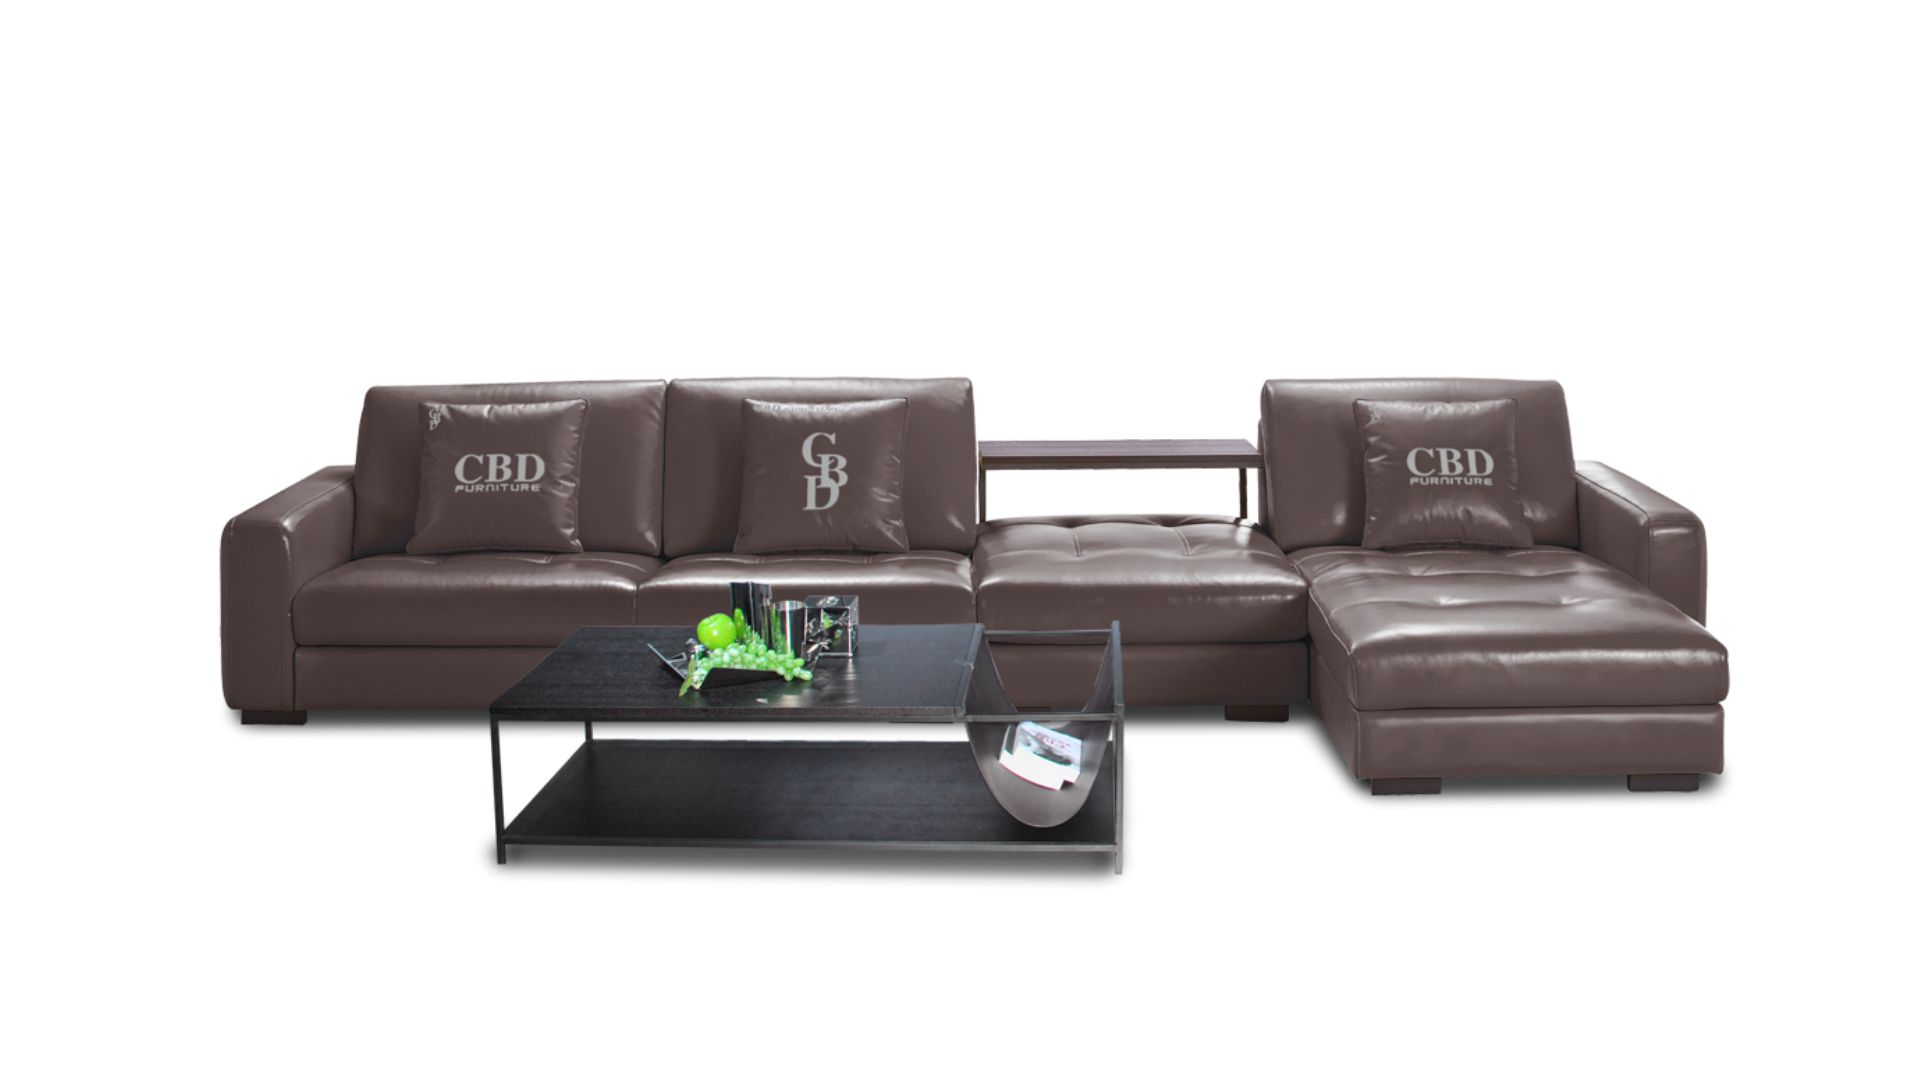 "<p><strong>Specification&Dimensions:</strong></p><p>LAF 3 SEATER: W70""*D40""*H31""        </p><p>RAF CHAISE: W39""*D68""*H31""    </p><p>OTTOMAN: W31""*D40""*H15""</p><p><br/></p><p><strong>Key Features:</strong></p><p>*Upholstered In Cow top Leather/pvc       </p><p>*Color: Yellow                            </p><p>*Adjustable Headrests                               </p><p>*Various combination upon your need                                               </p><p>*Slat sofa base to support the seat cushion                          </p><p>*Available In Other Upholstery By Special Order</p><p><br/></p>"